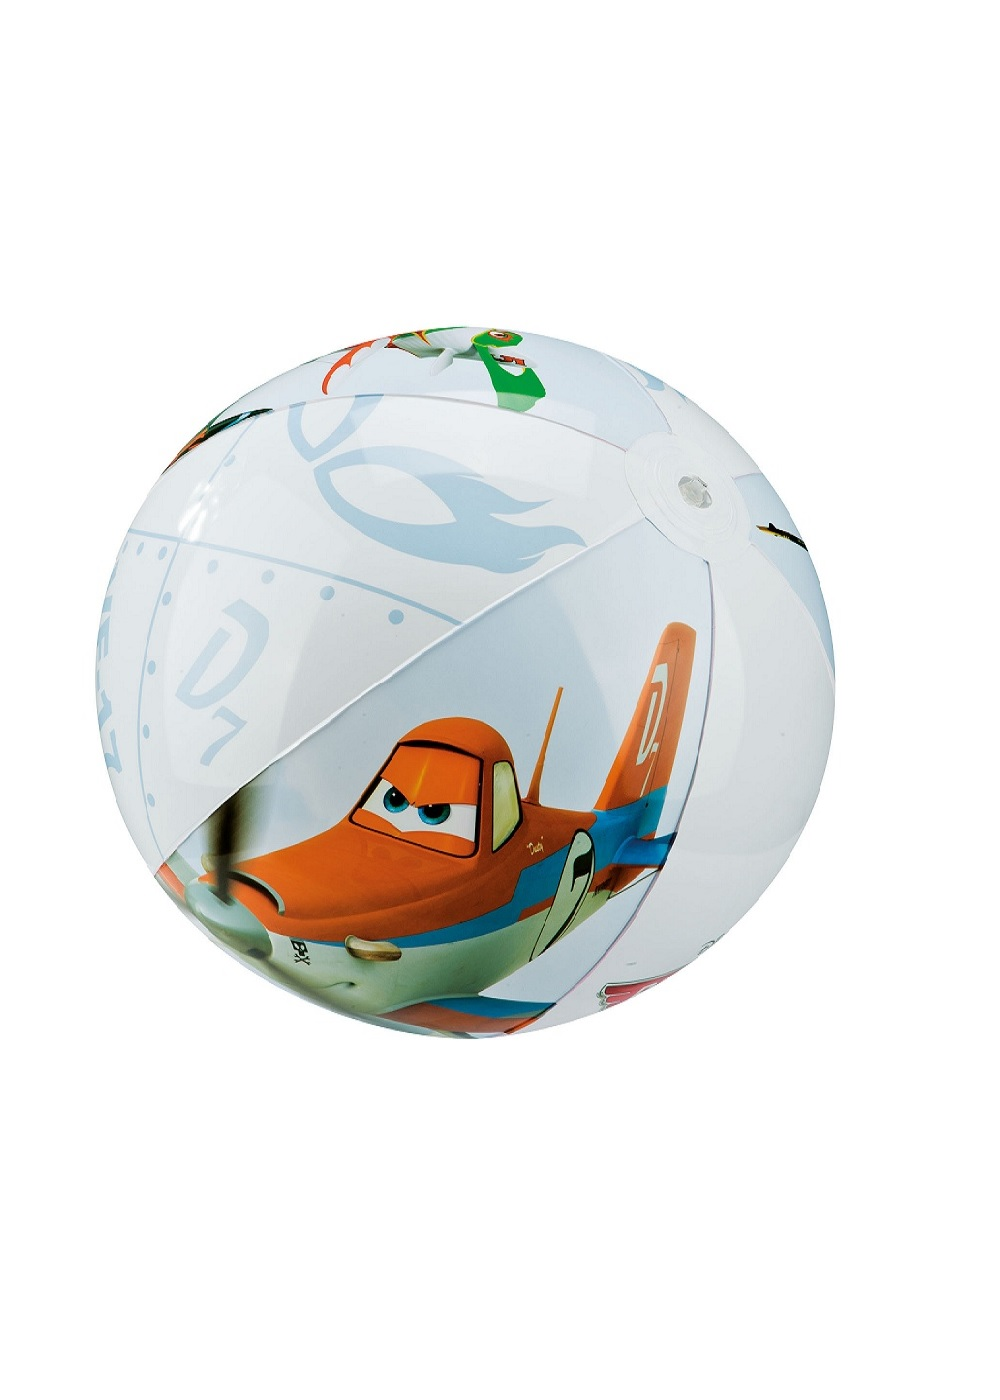 INTEX-PLANES 24 INCH BEACH BALL,Ages 3+,58058NP